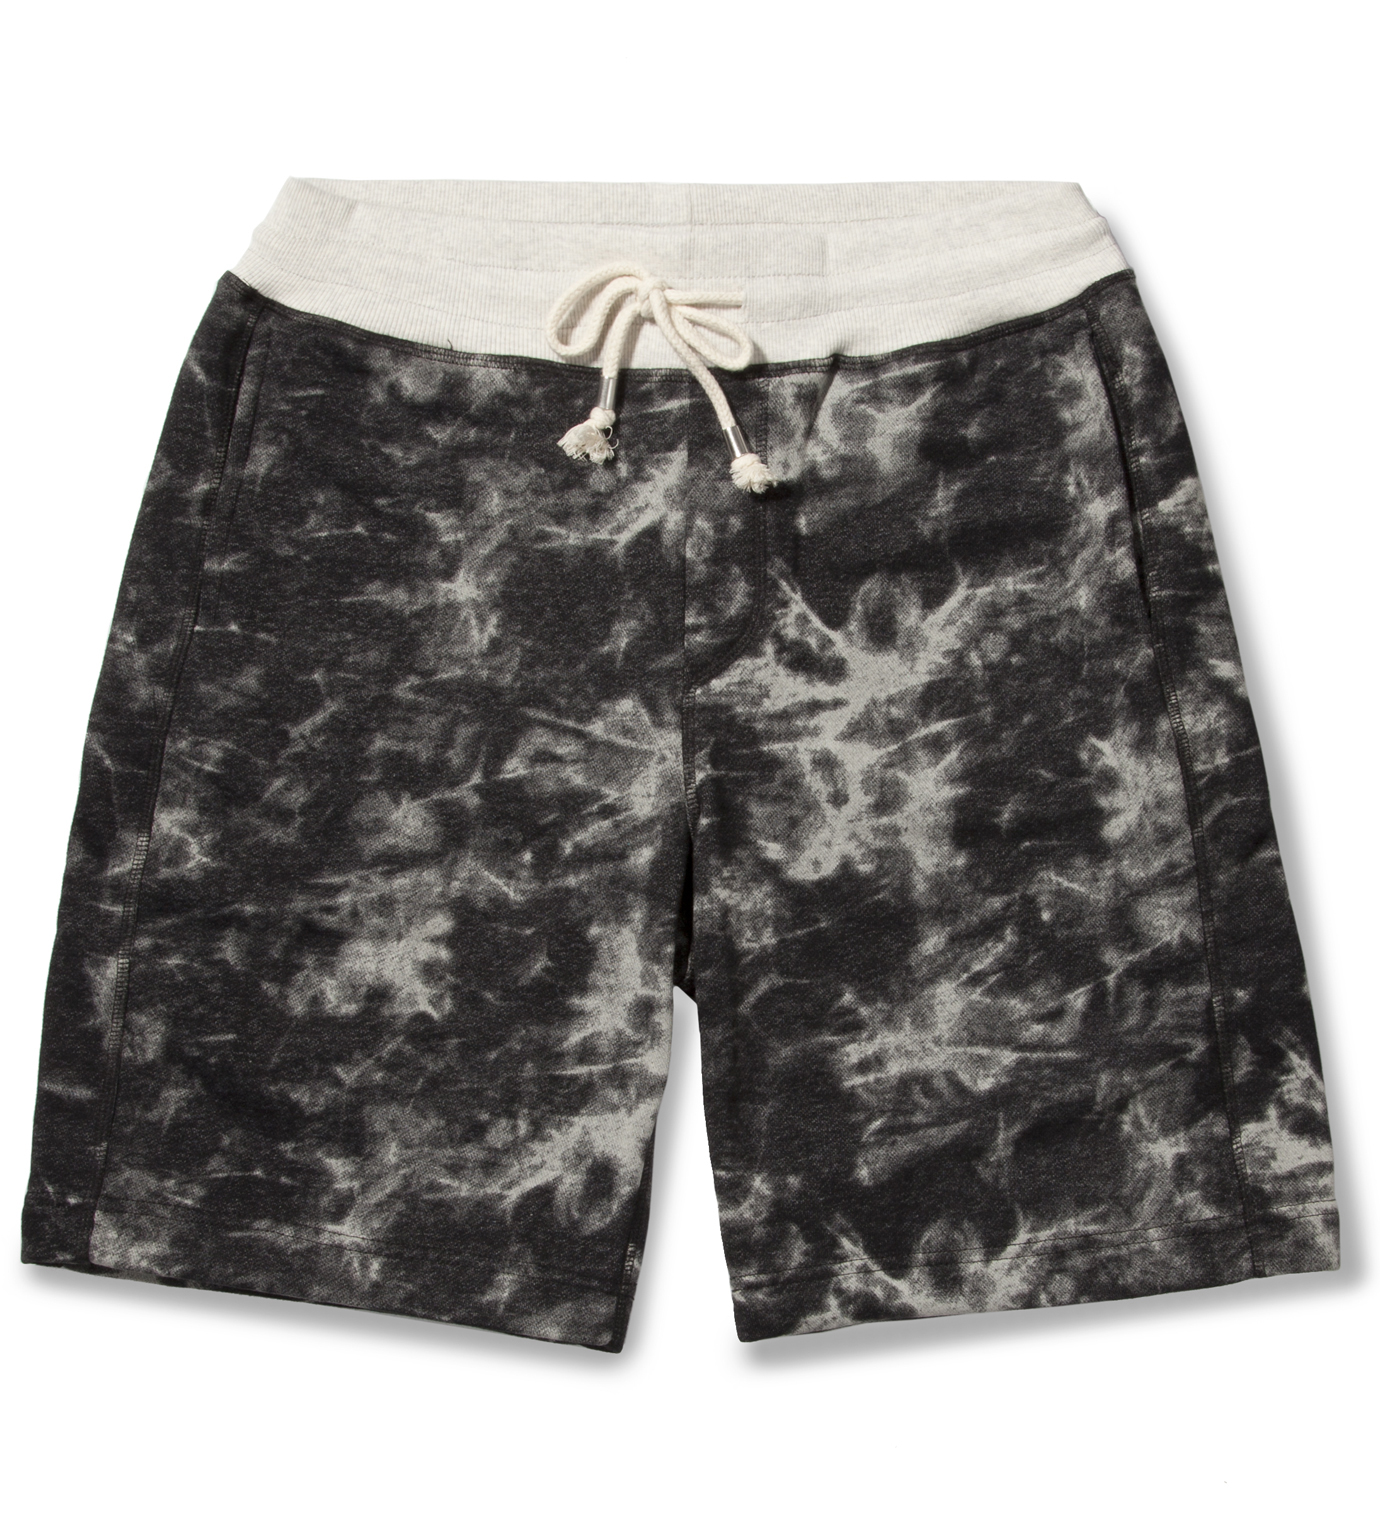 Shades of Grey by Micah Cohen Blackwater Tie-dye Sweatshort